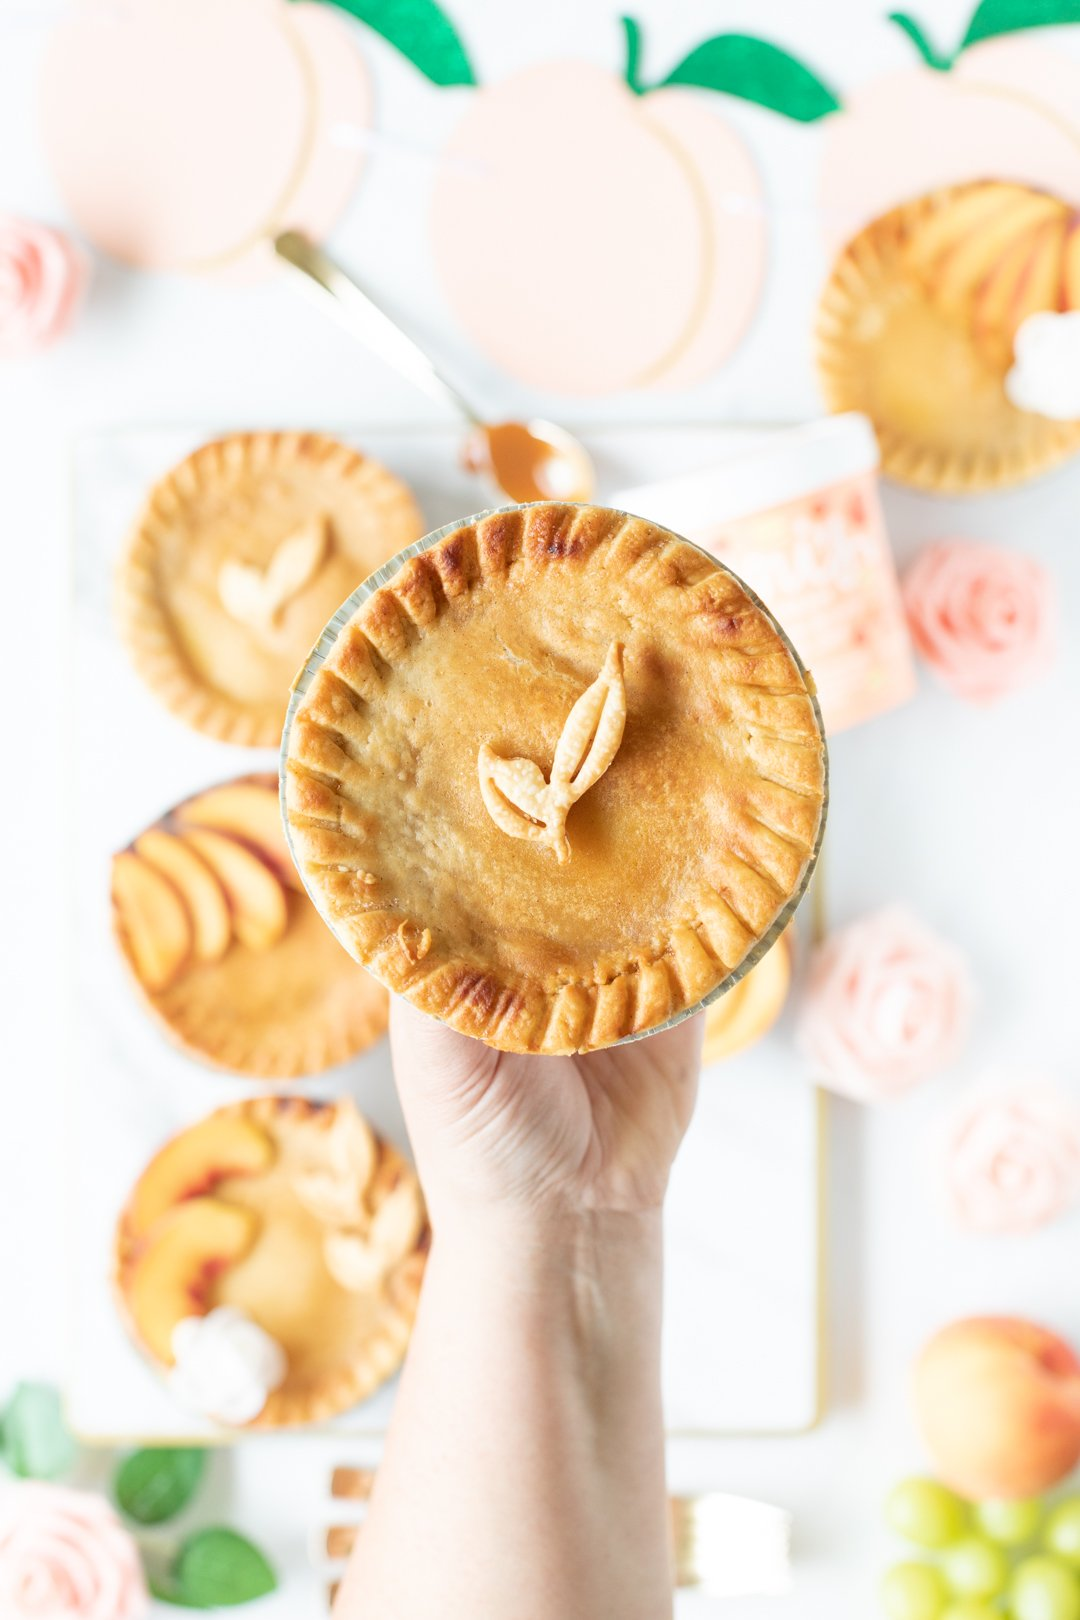 mini peach pie being held by woman's hand. Pretty leaf made out of pie crust on top.